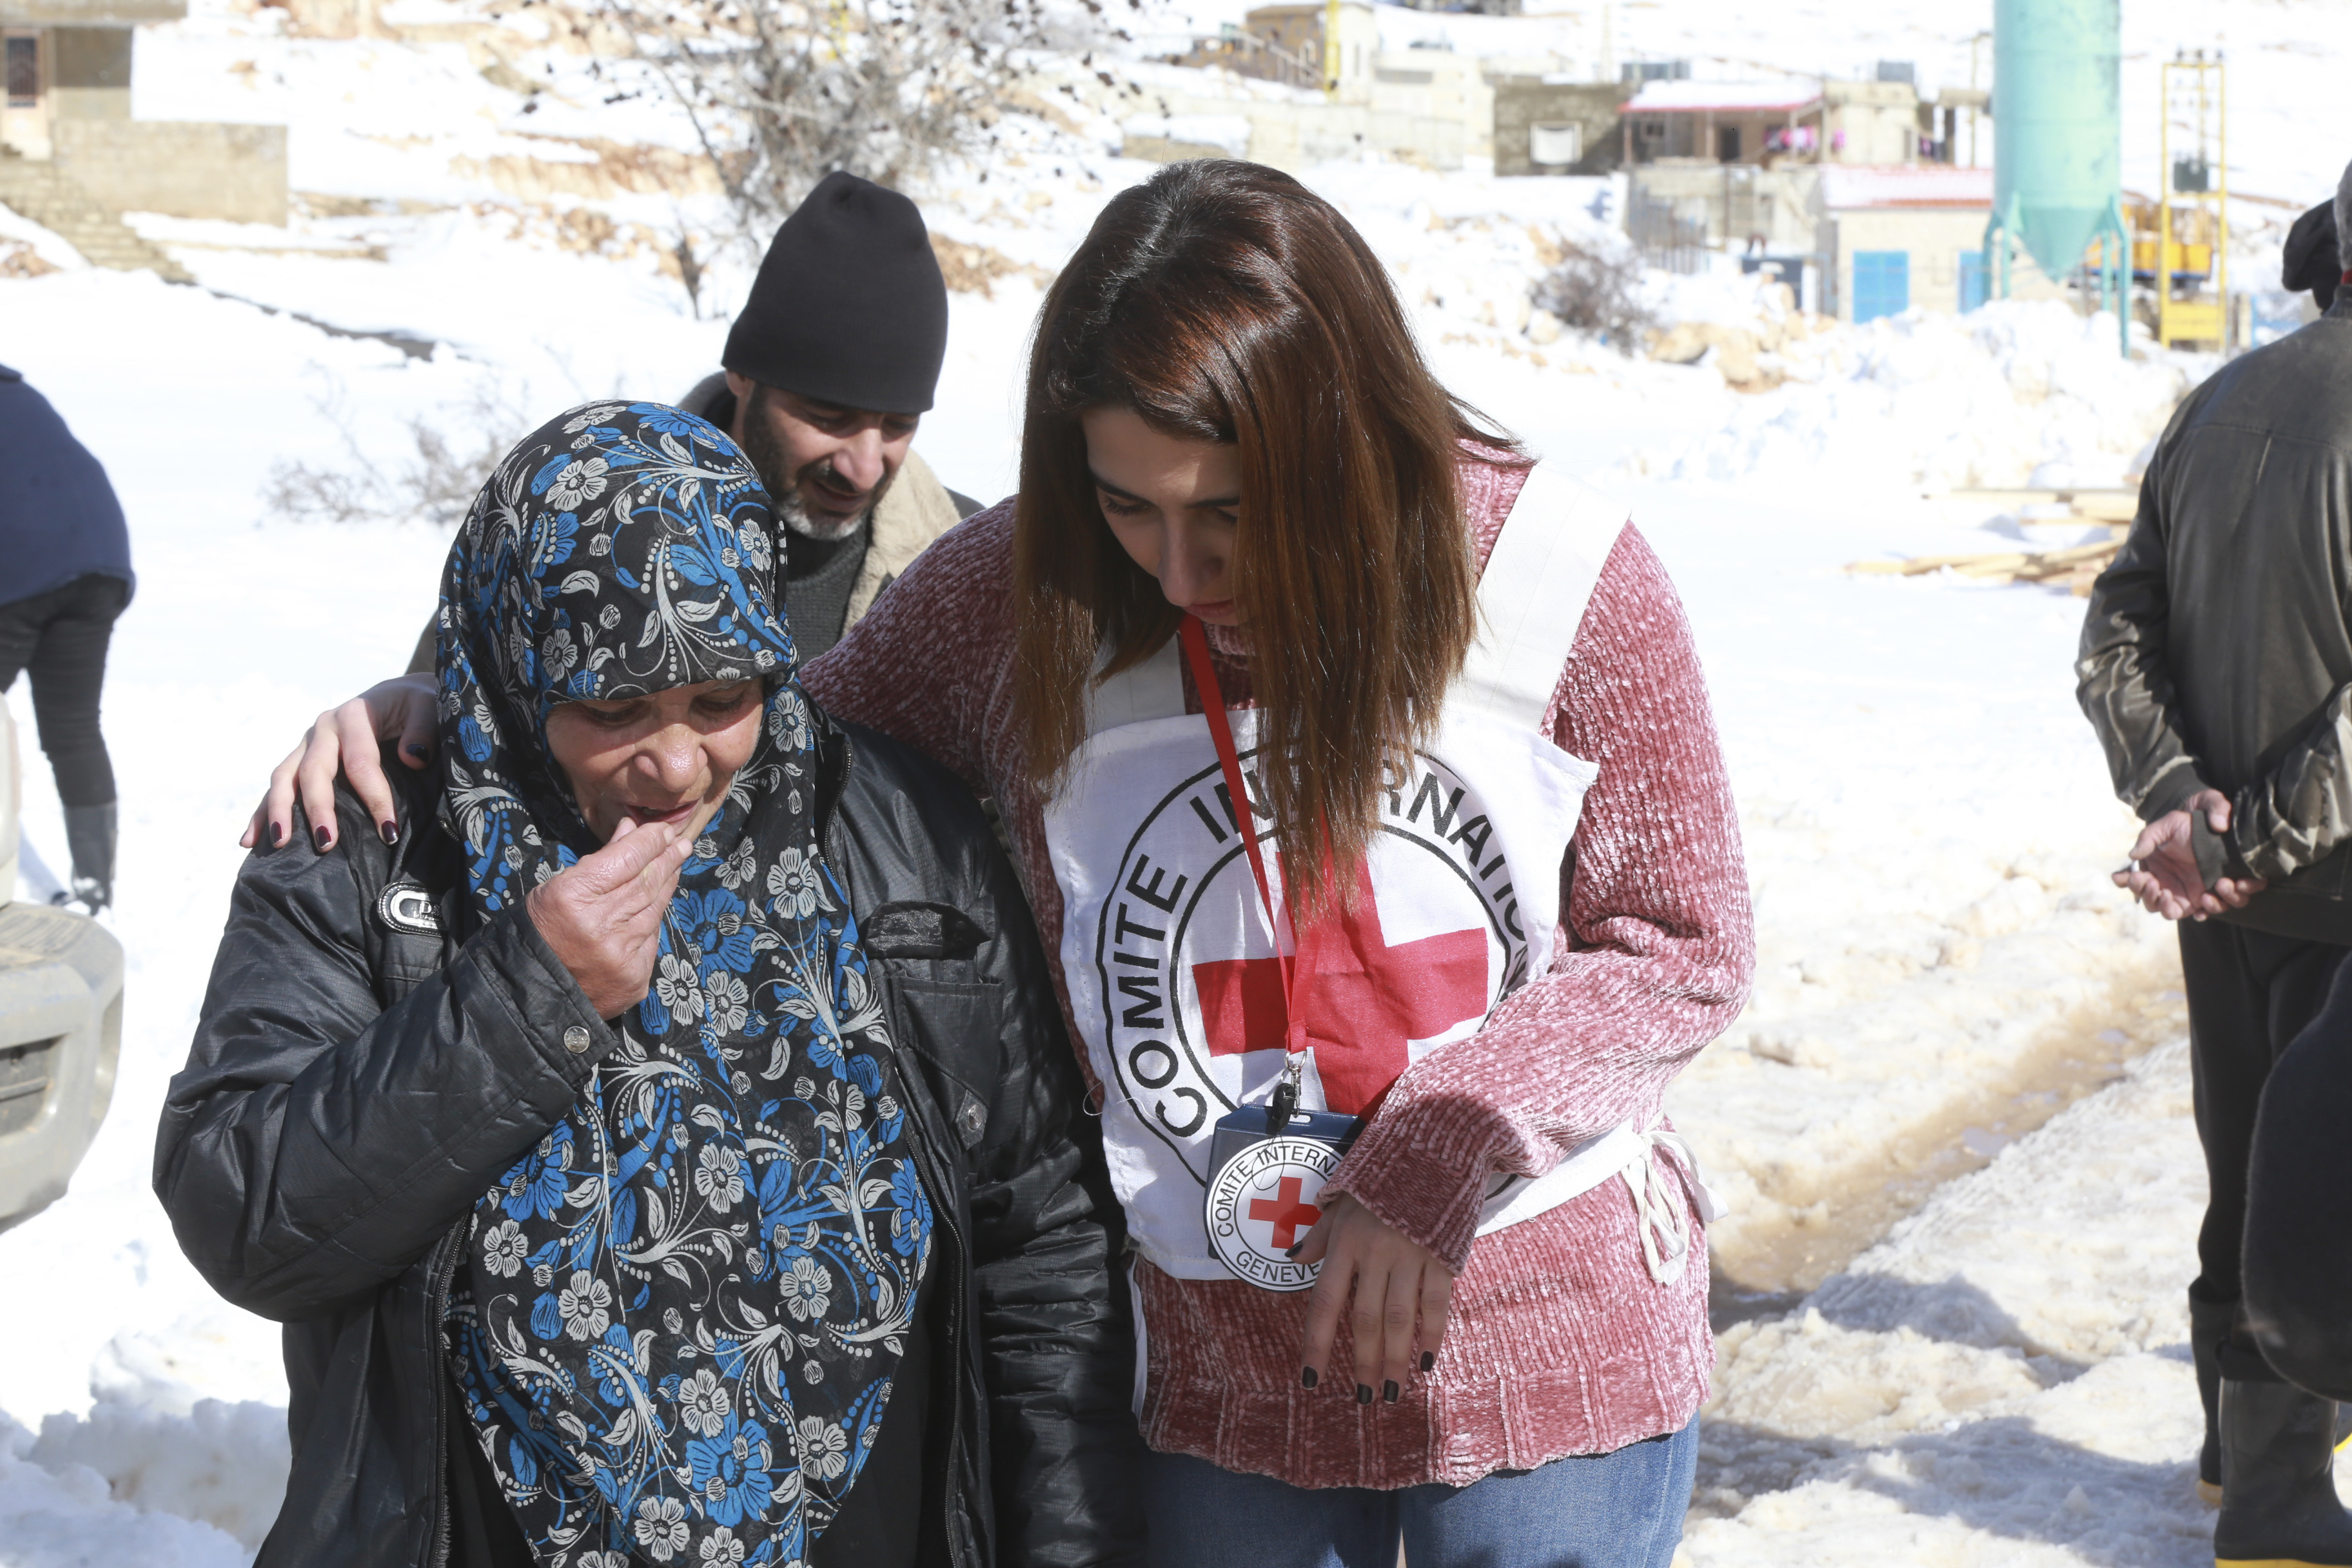 An aid worker in Arsal refugee camp in Lebanon with her arm around a woman.